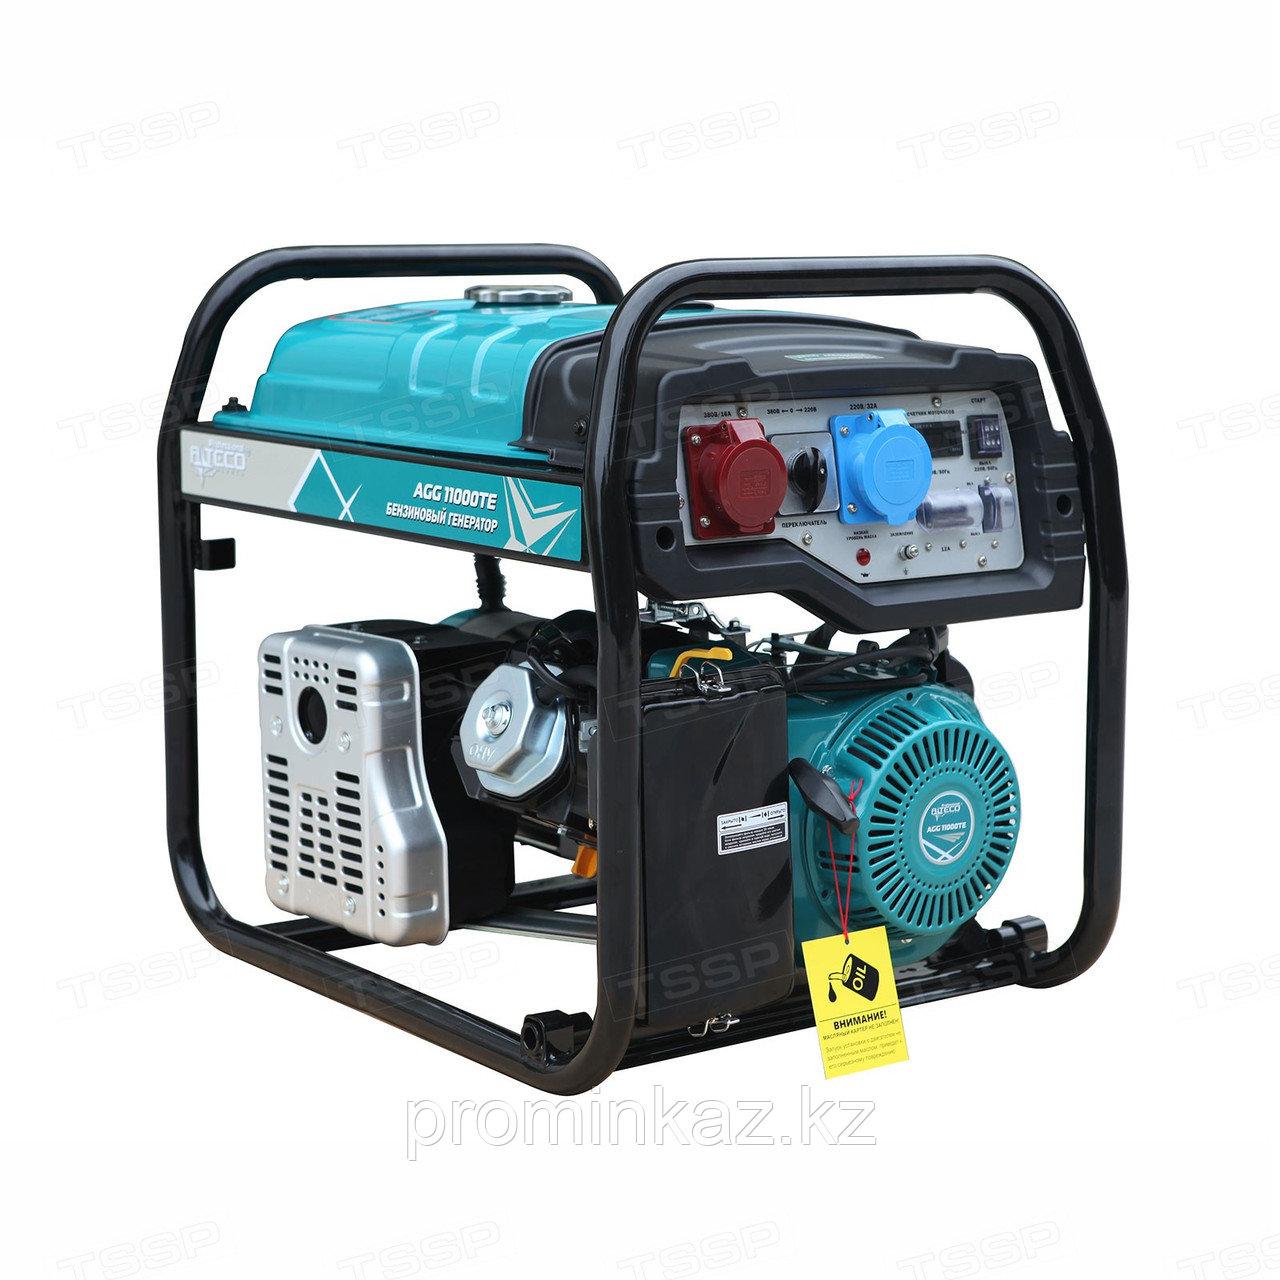 Бензиновый генератор ALTECO AGG 15000TE DUO, 12кВт, 380/220В